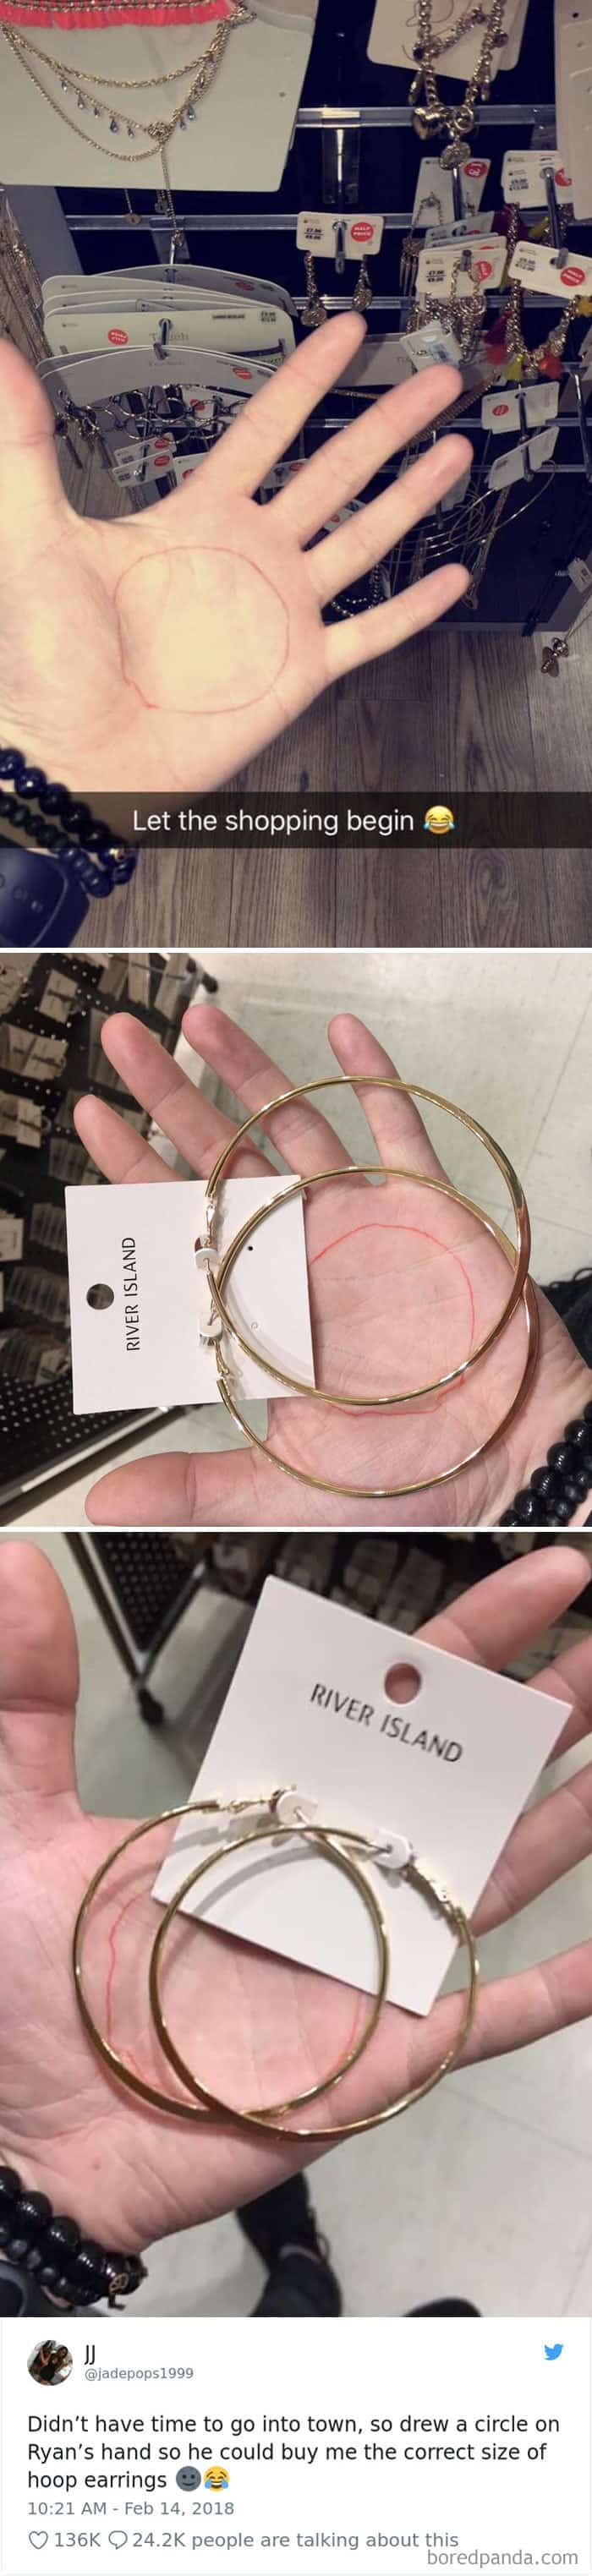 cricle-on-hand-to-determine-earring-size-hilarious-tweets-women